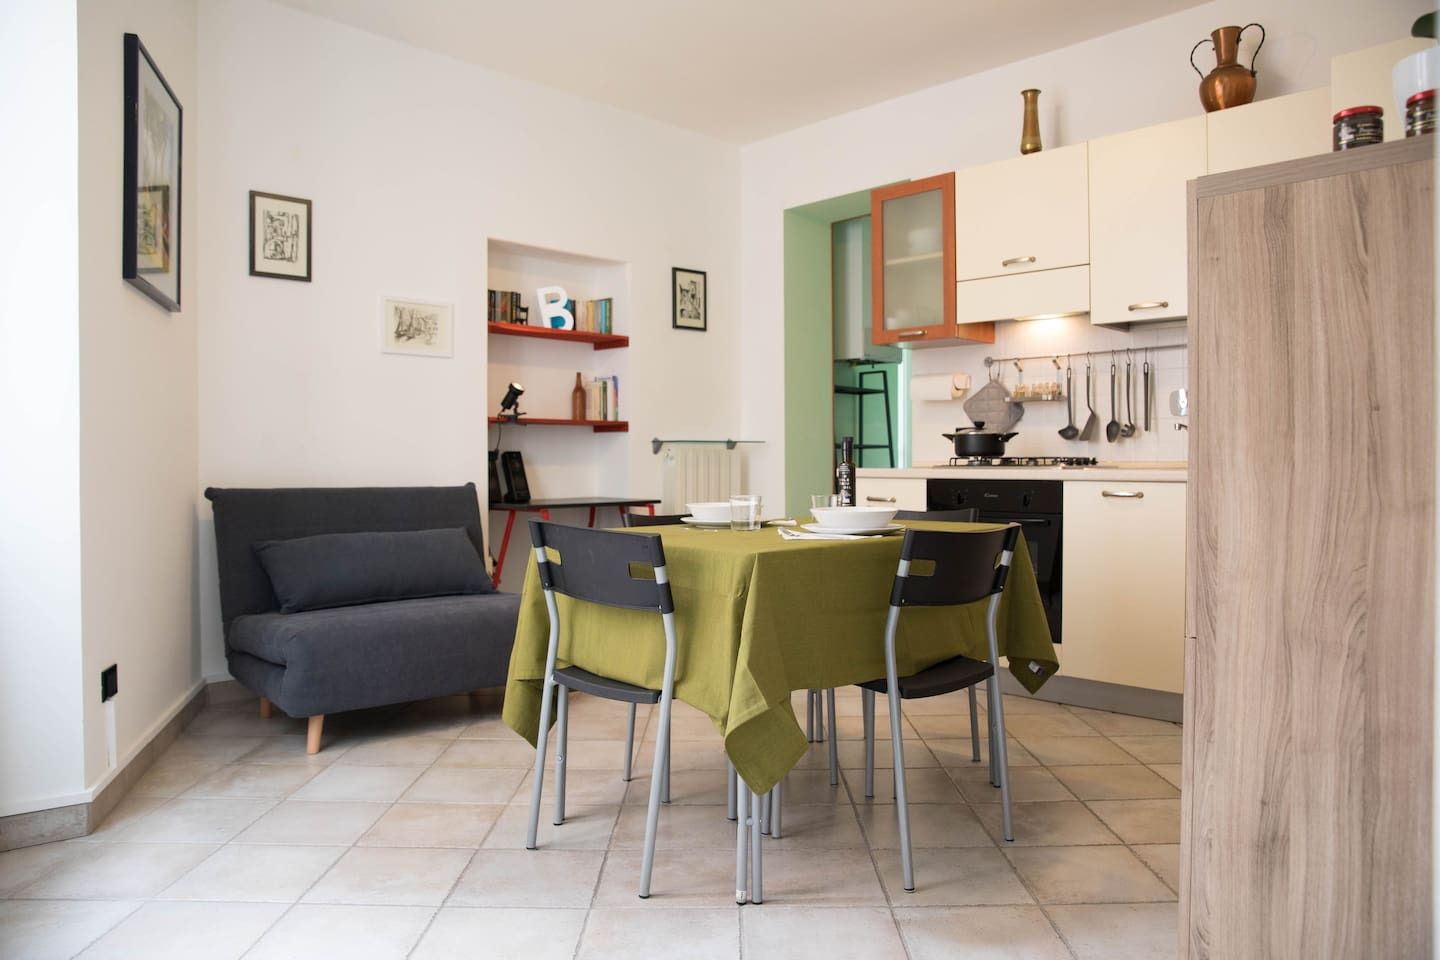 Casa Bajarico SANREMO  I'm a local host, Casa Bajarico is my family house!  I live near the apartment and i'm really happy to welcome you at my house I'm here  to help you ENJOY your   RIVIERA EXPERIENCE!!